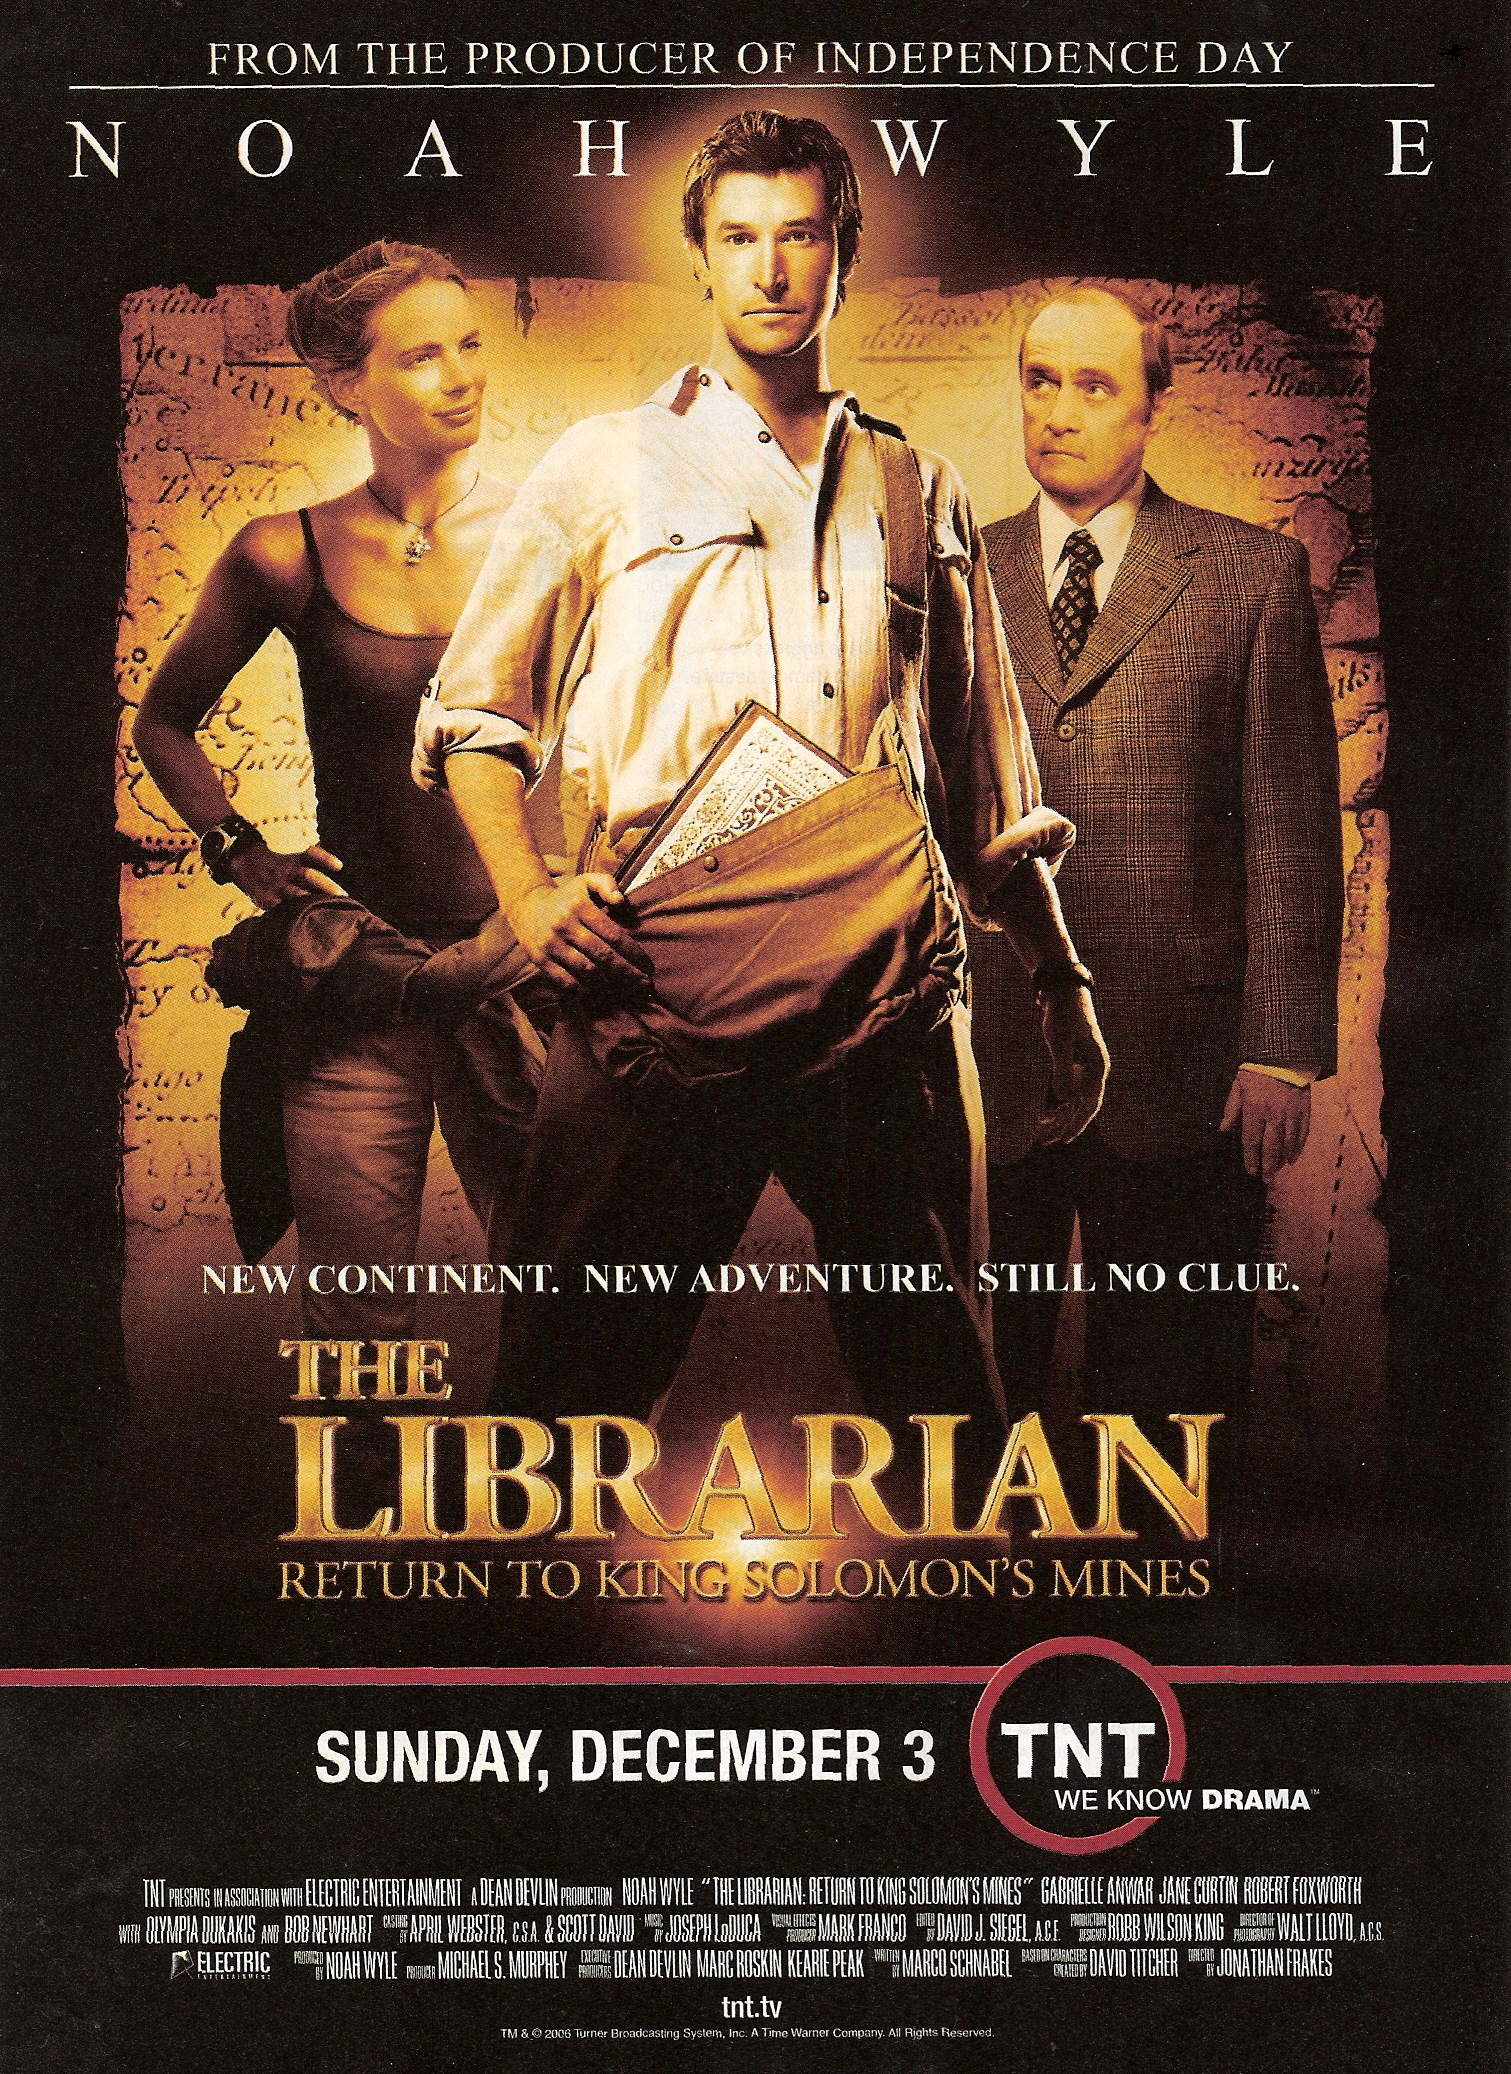 The Librarian-Return to King Solomon's Mines-Poster.jpg